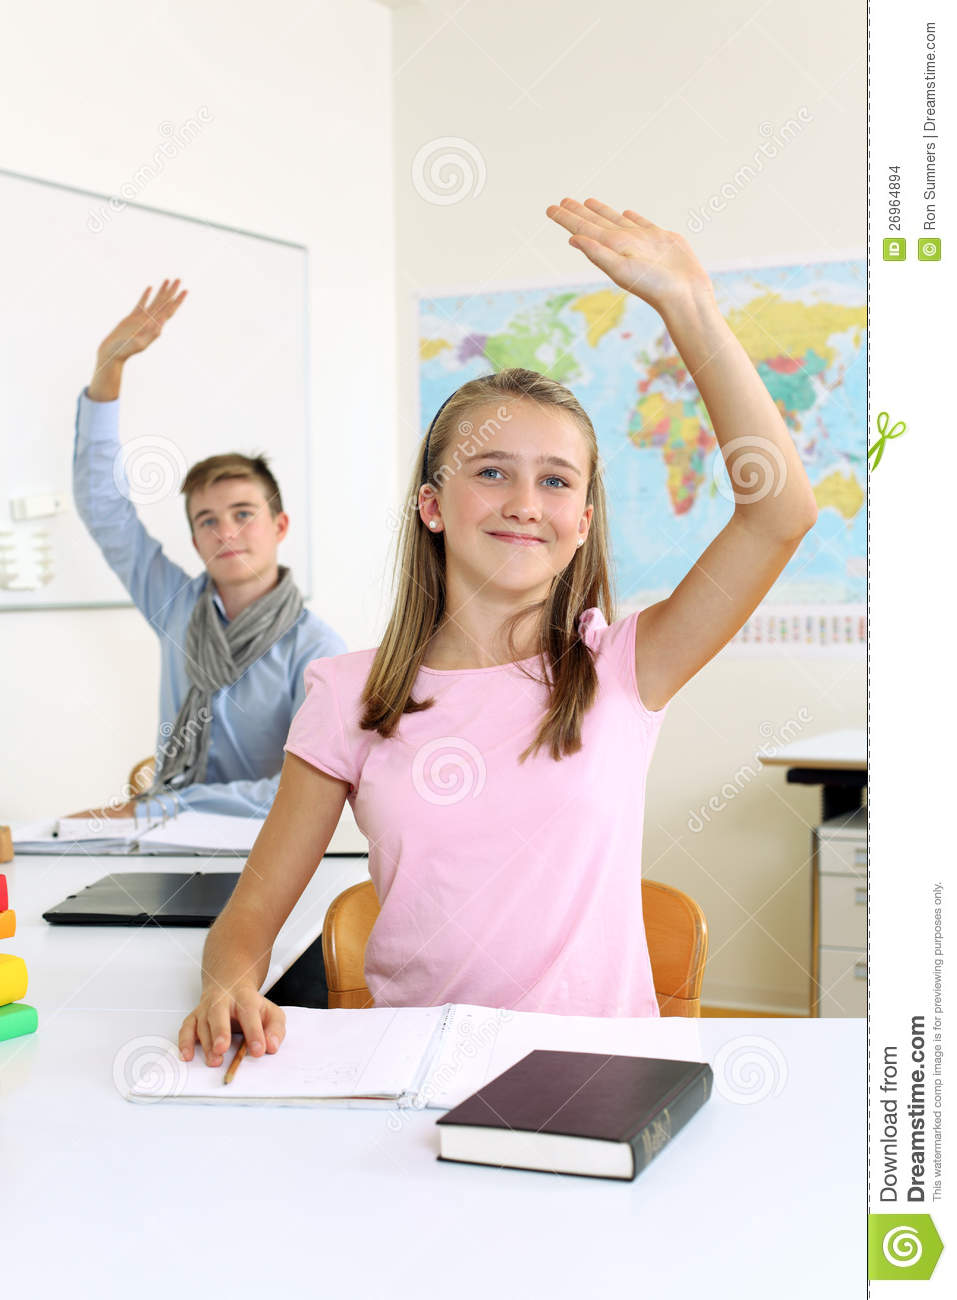 Students Raising Their Hands In Class Stock Images - Image ...